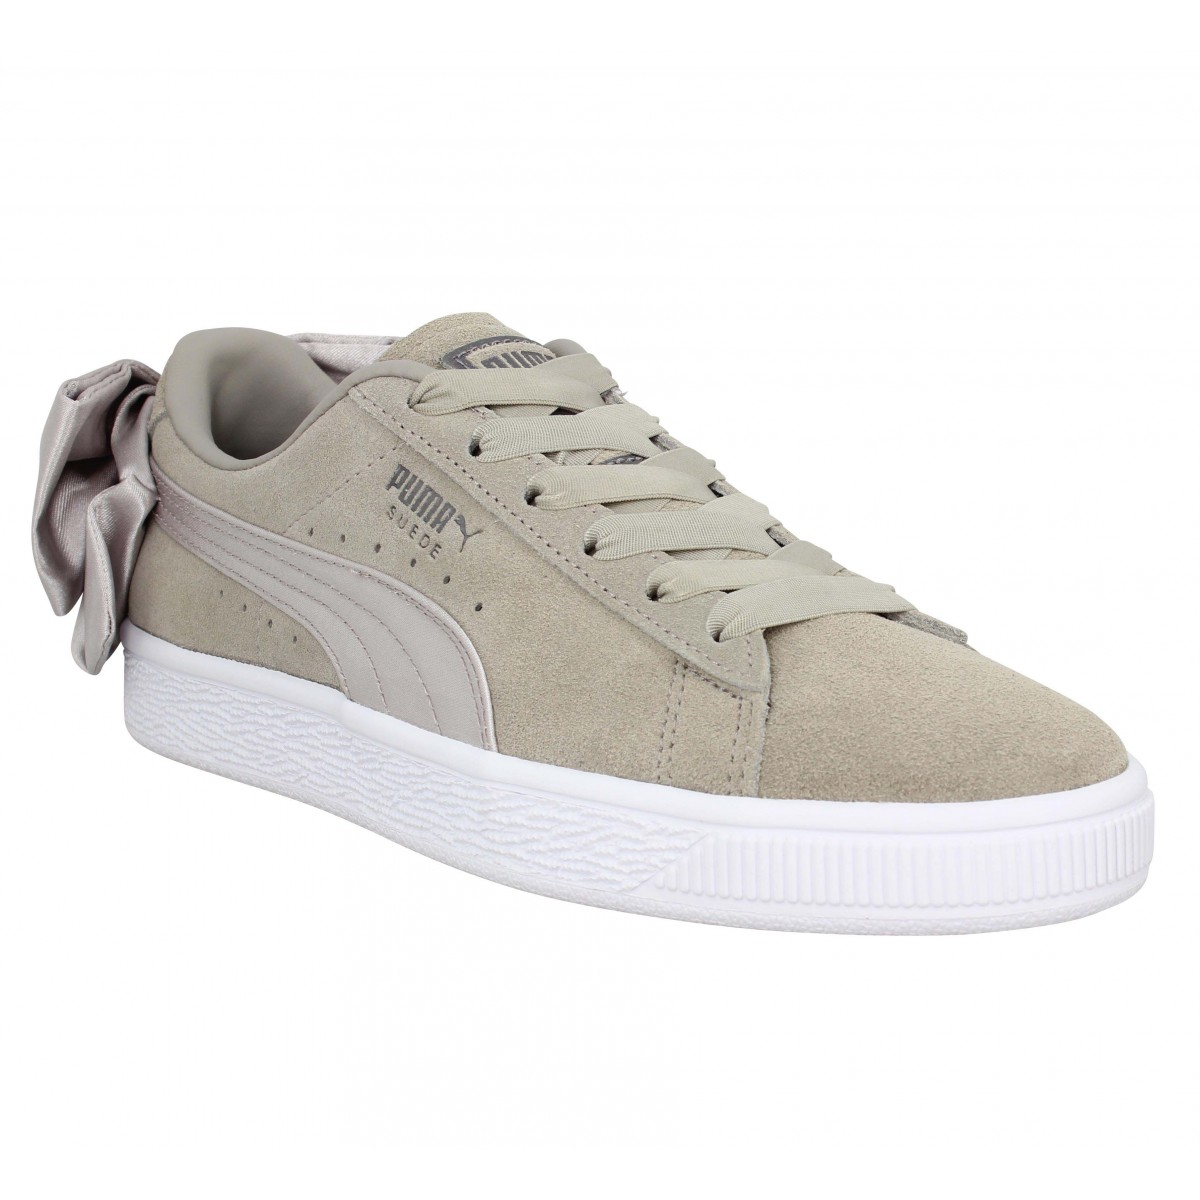 Puma Femme Suede Bow Velours -37-taupe